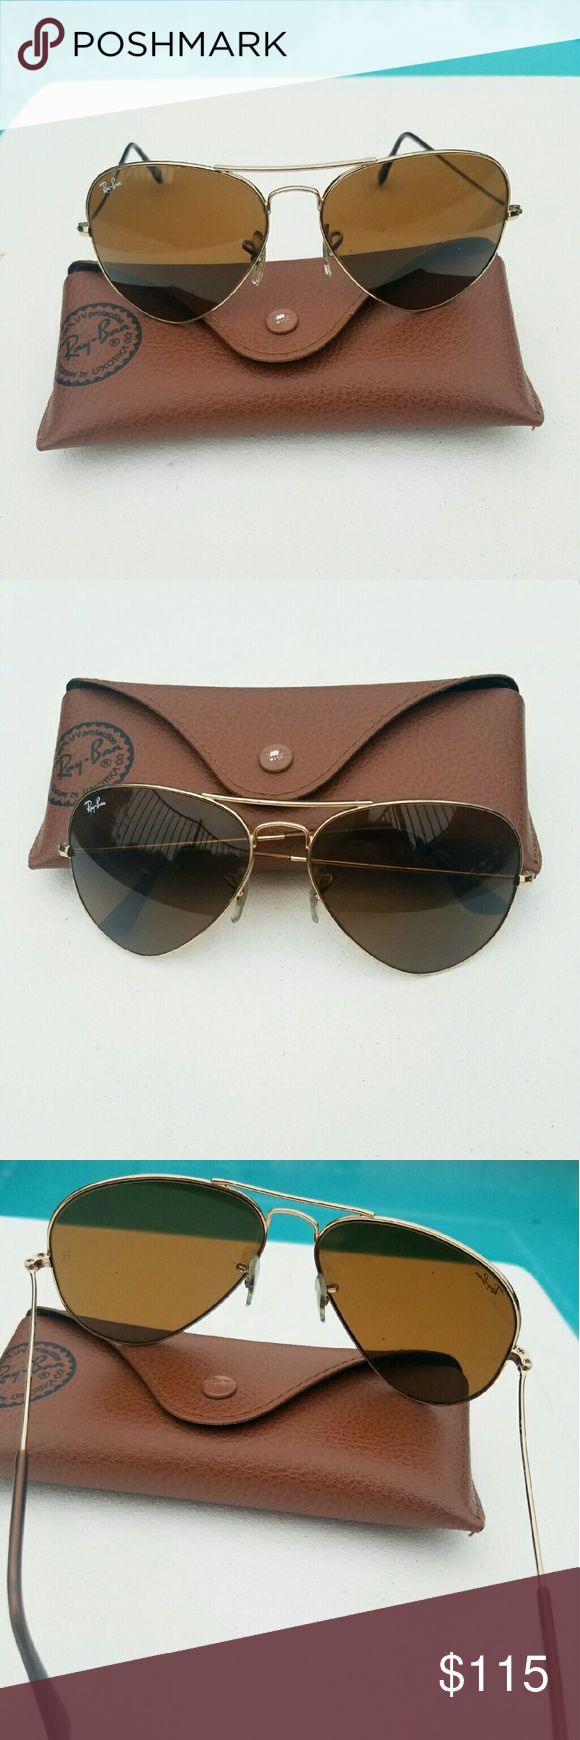 Rayban sunglasses RB 3025 Aviator Large metal 58mm Authentic Rayban sunglasses RB 3025 Aviator Large metal 58mm. Some very tiny minor dents on the bottom of the frame. Normal scartch on the lens but not affect and noticeable while wearing. It's good used